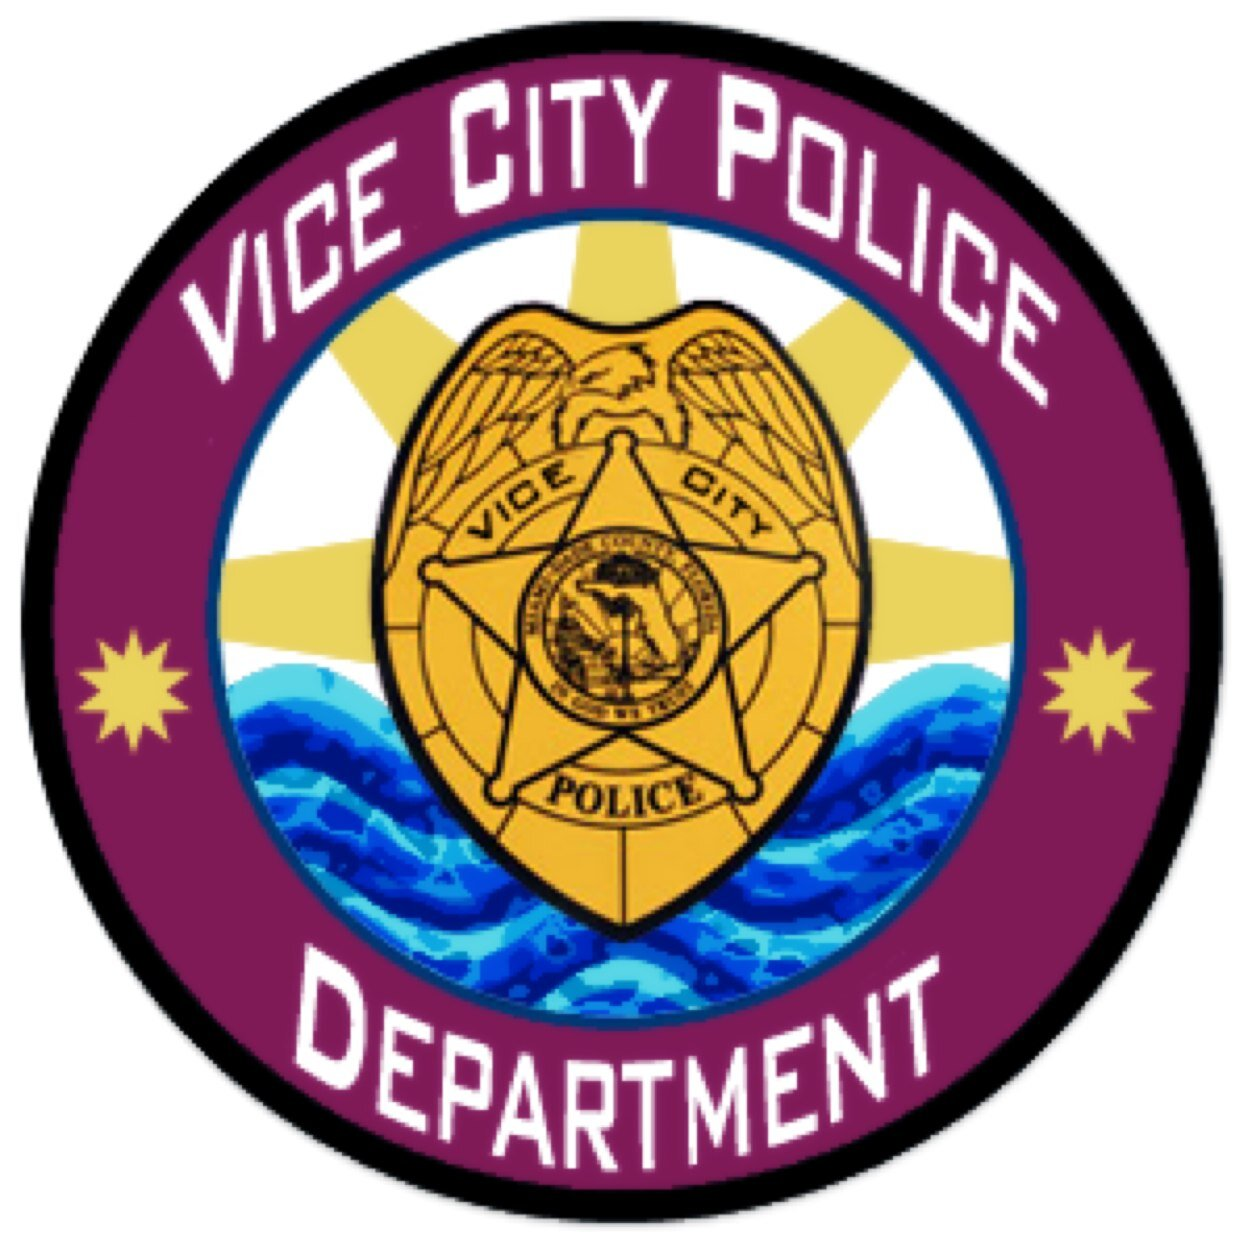 Vice City Police on Twitter: